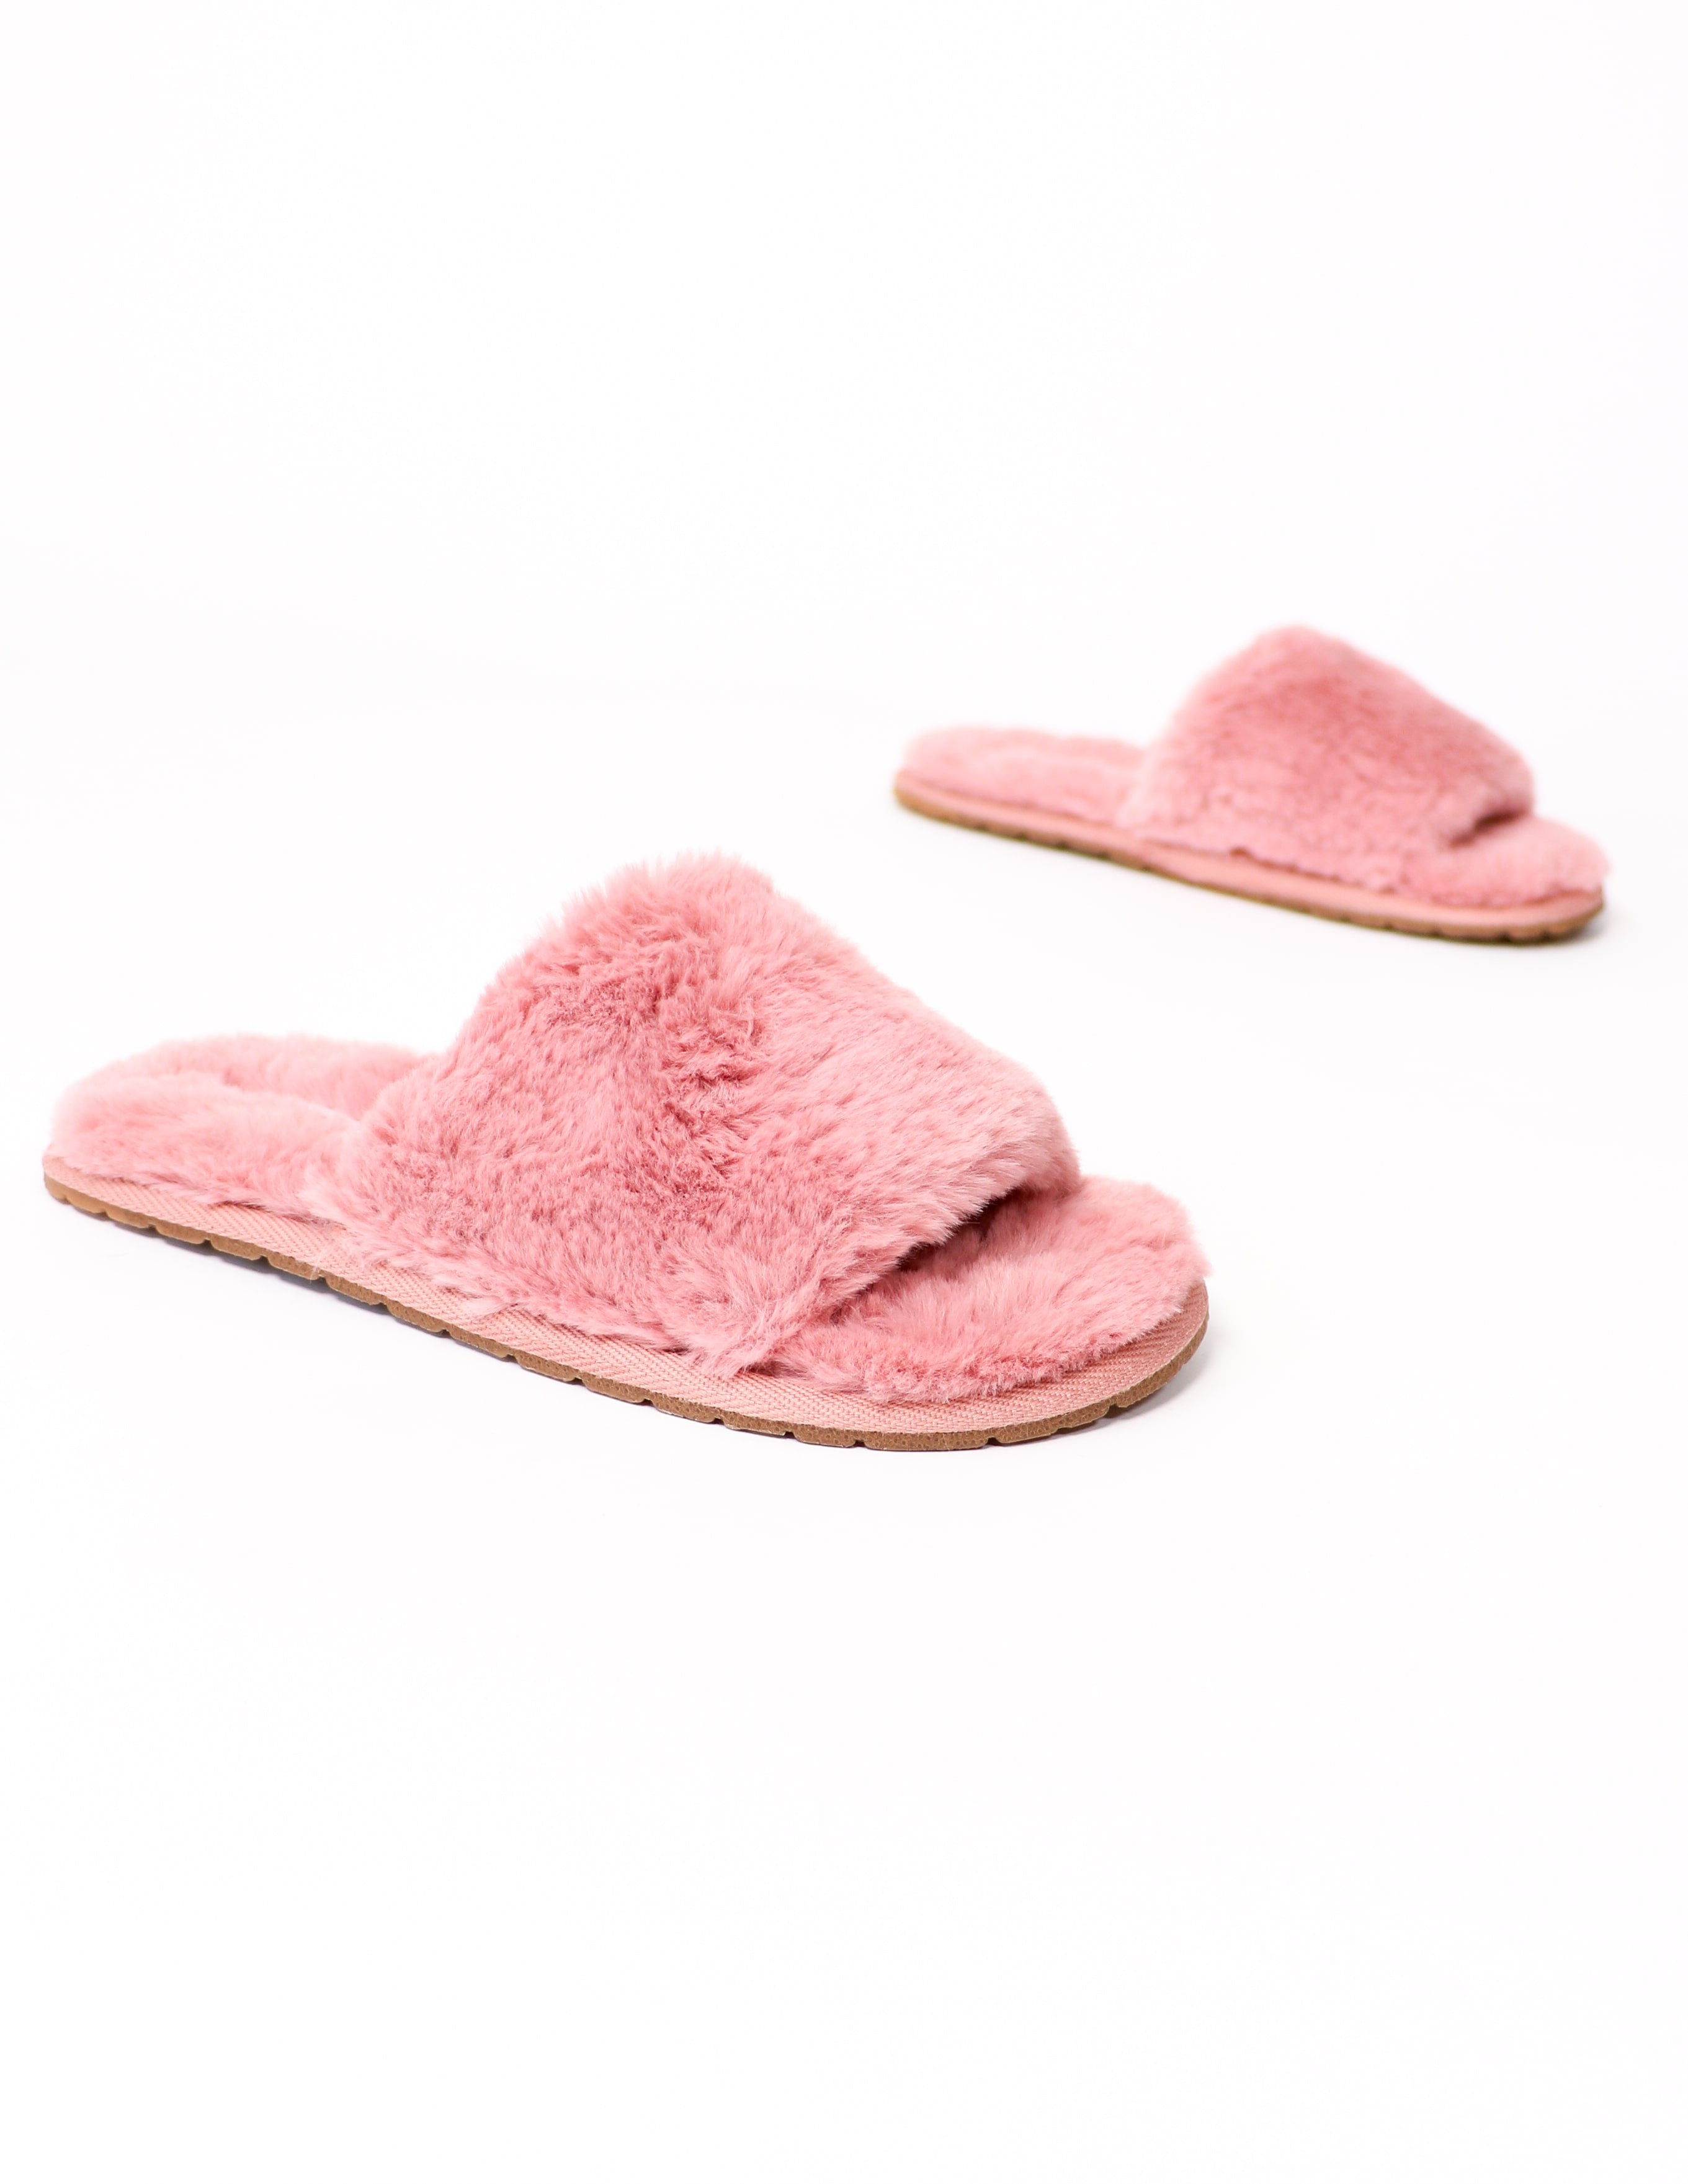 Mauve cozy for you slippers on white background - elle bleu shoes